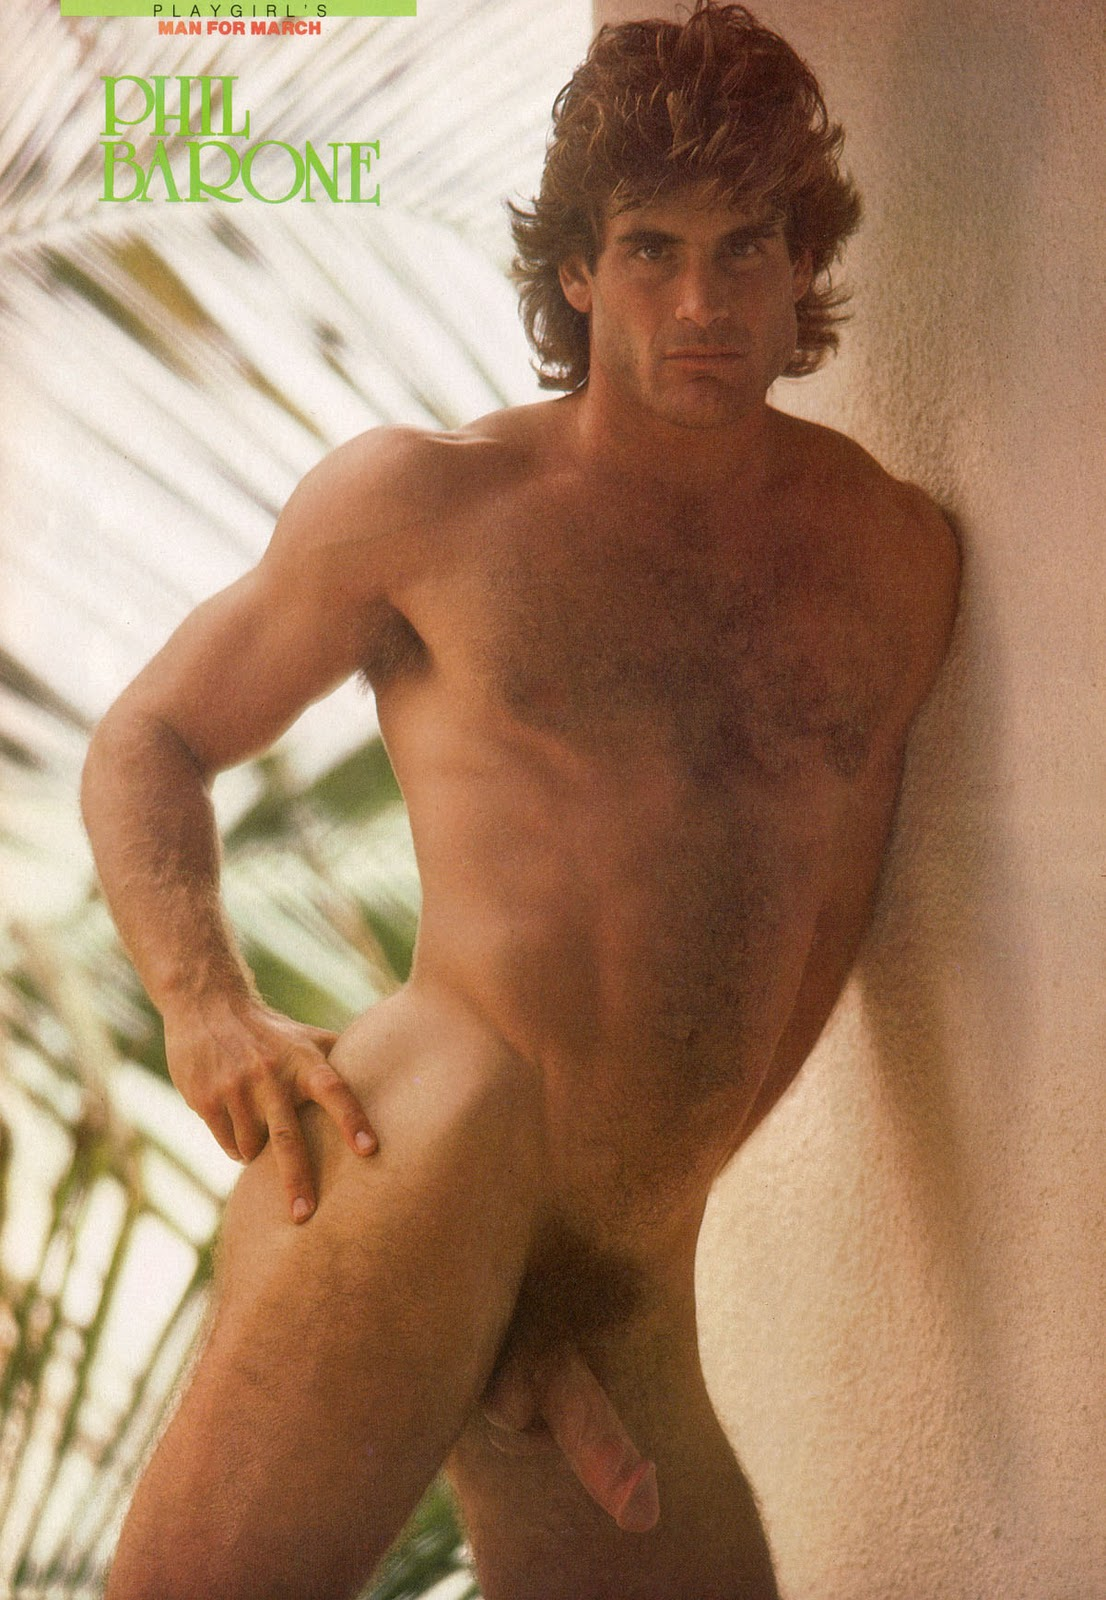 from Gunnar pics of nude playgirl boys